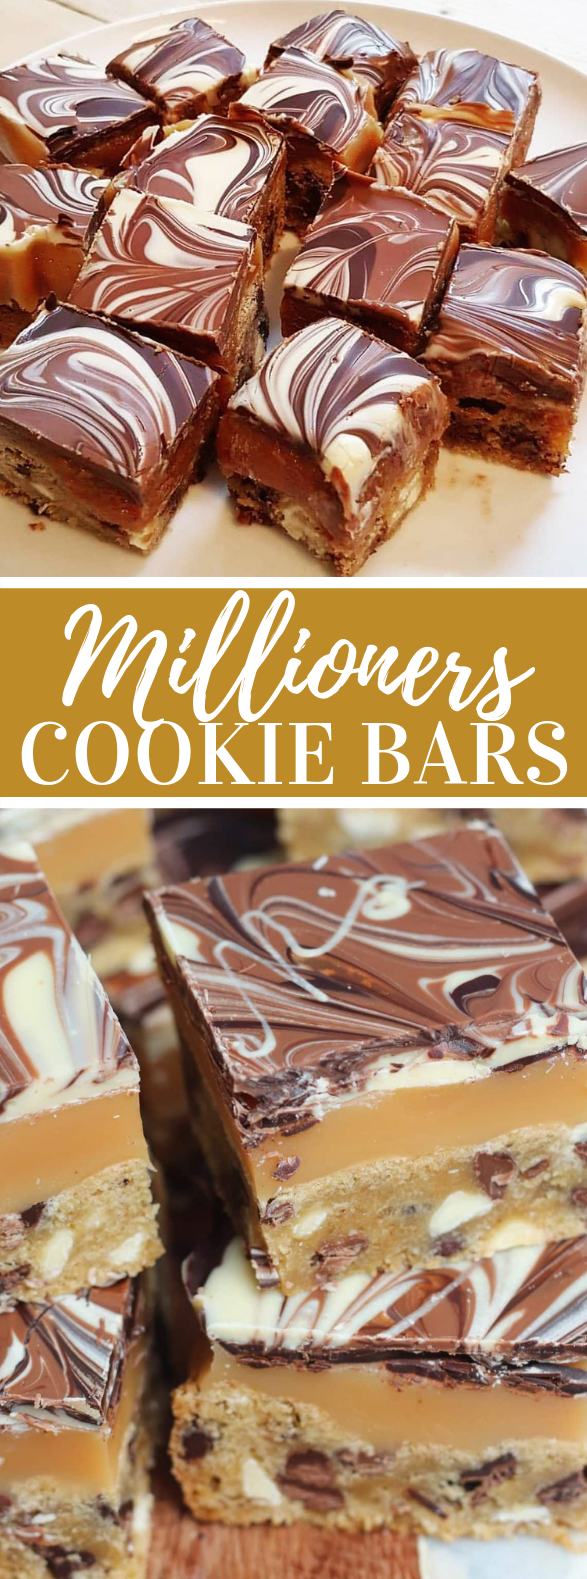 MILLIONAIRES COOKIE BARS! #desserts #homemade